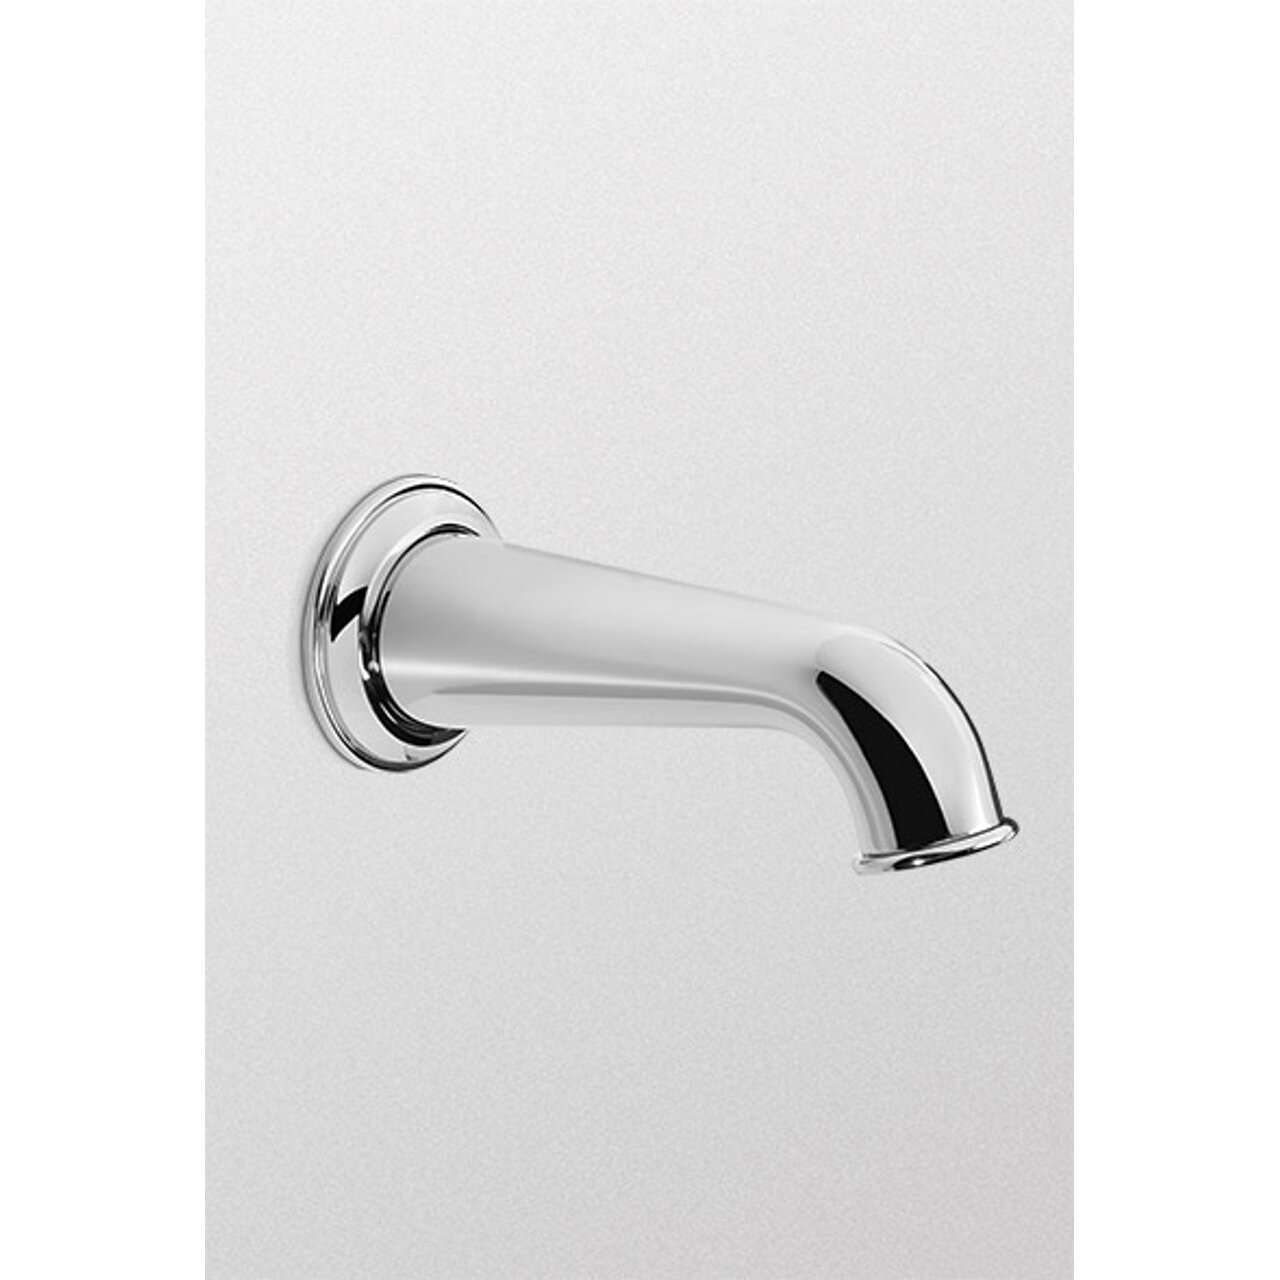 Toto TS220E#CP Vivian Wall Spout, Polished Chrome by TOTO